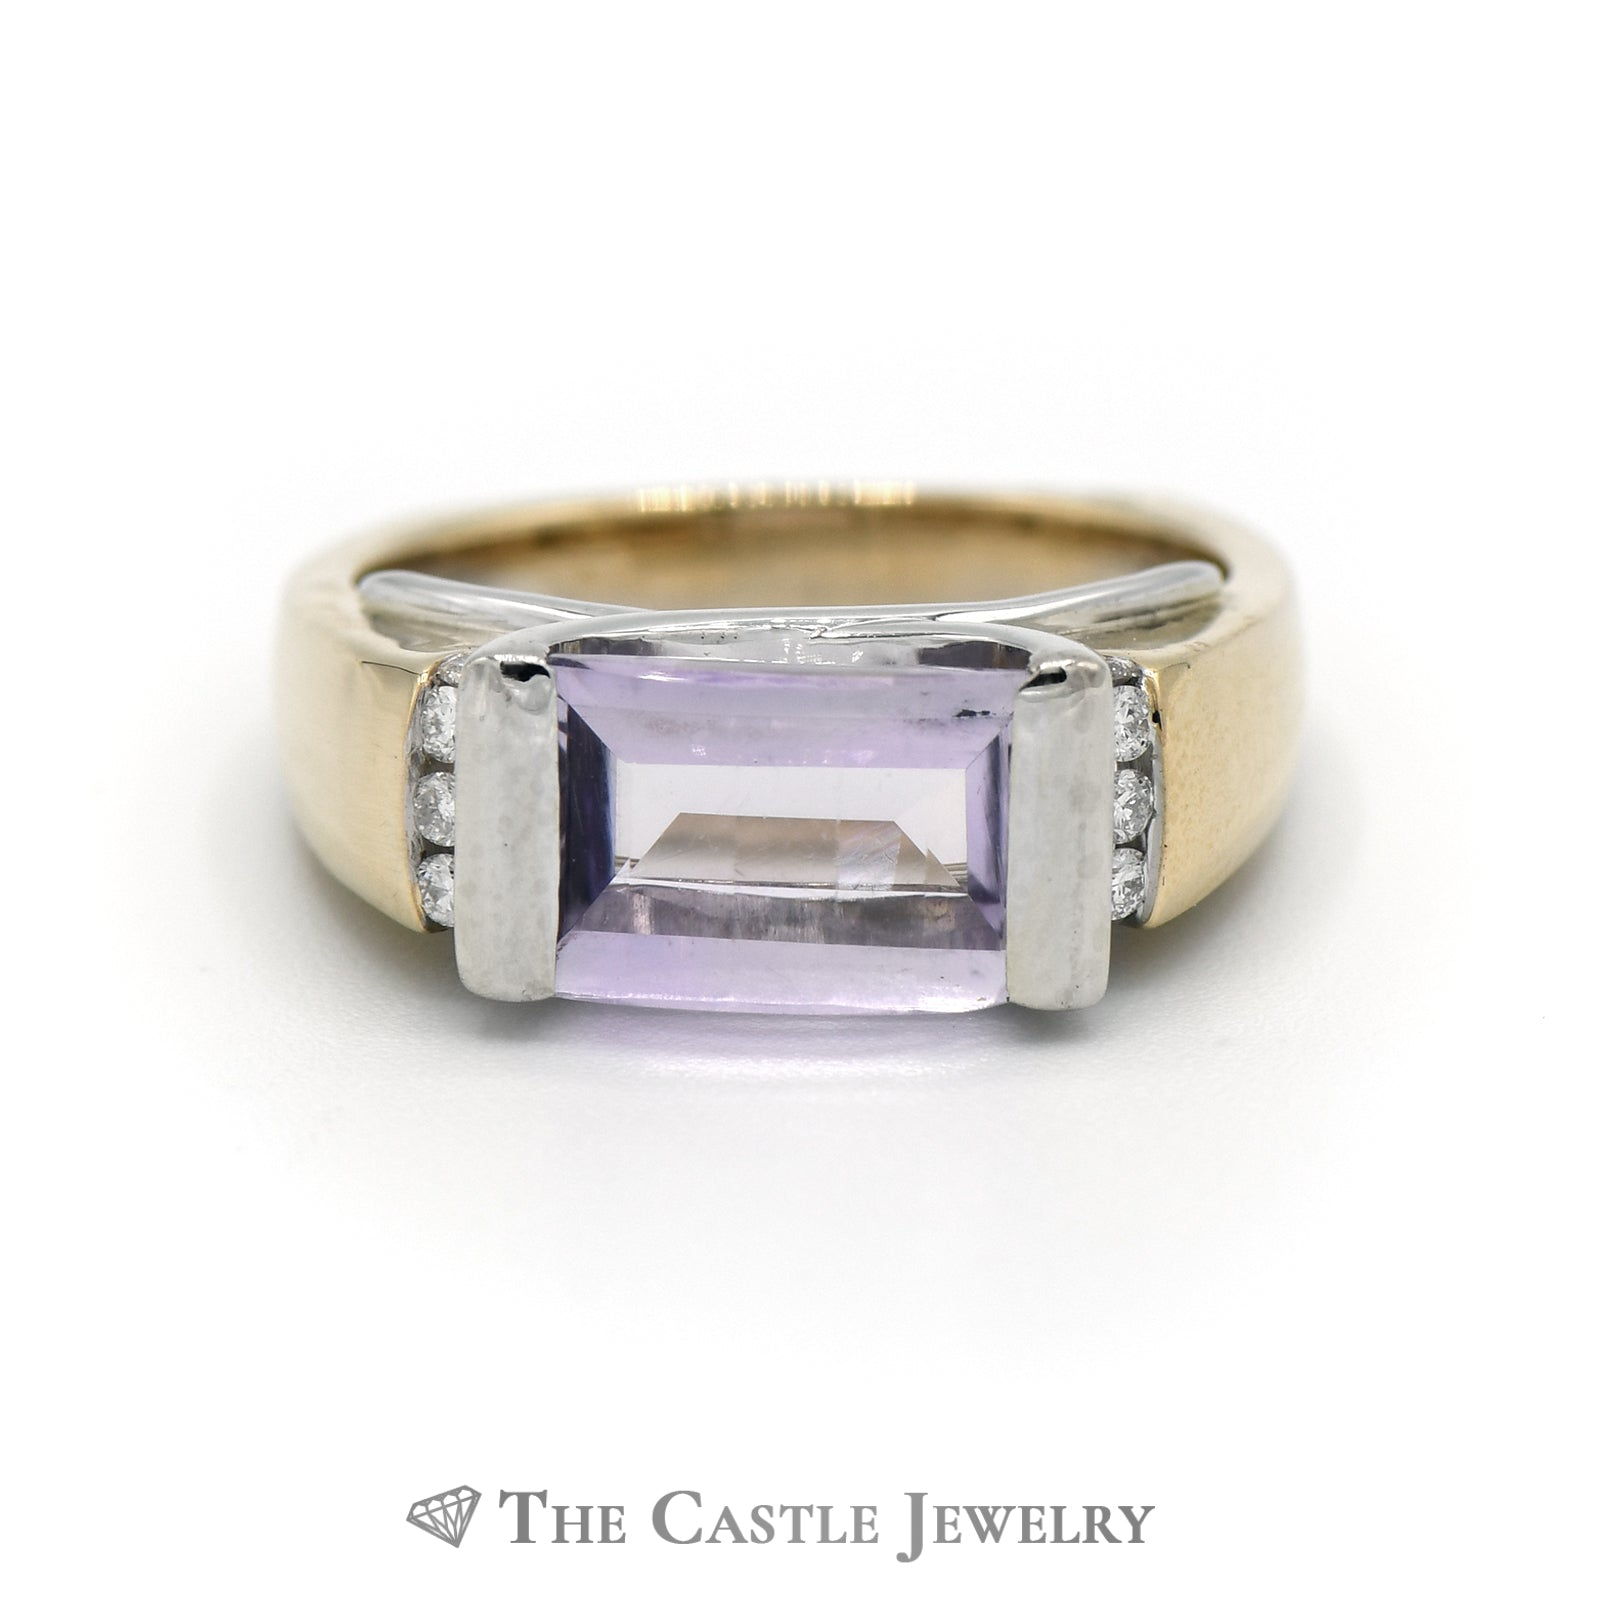 Fancy Cut Amethyst Ring With .09cttw Diamonds 14K Yellow Gold-0